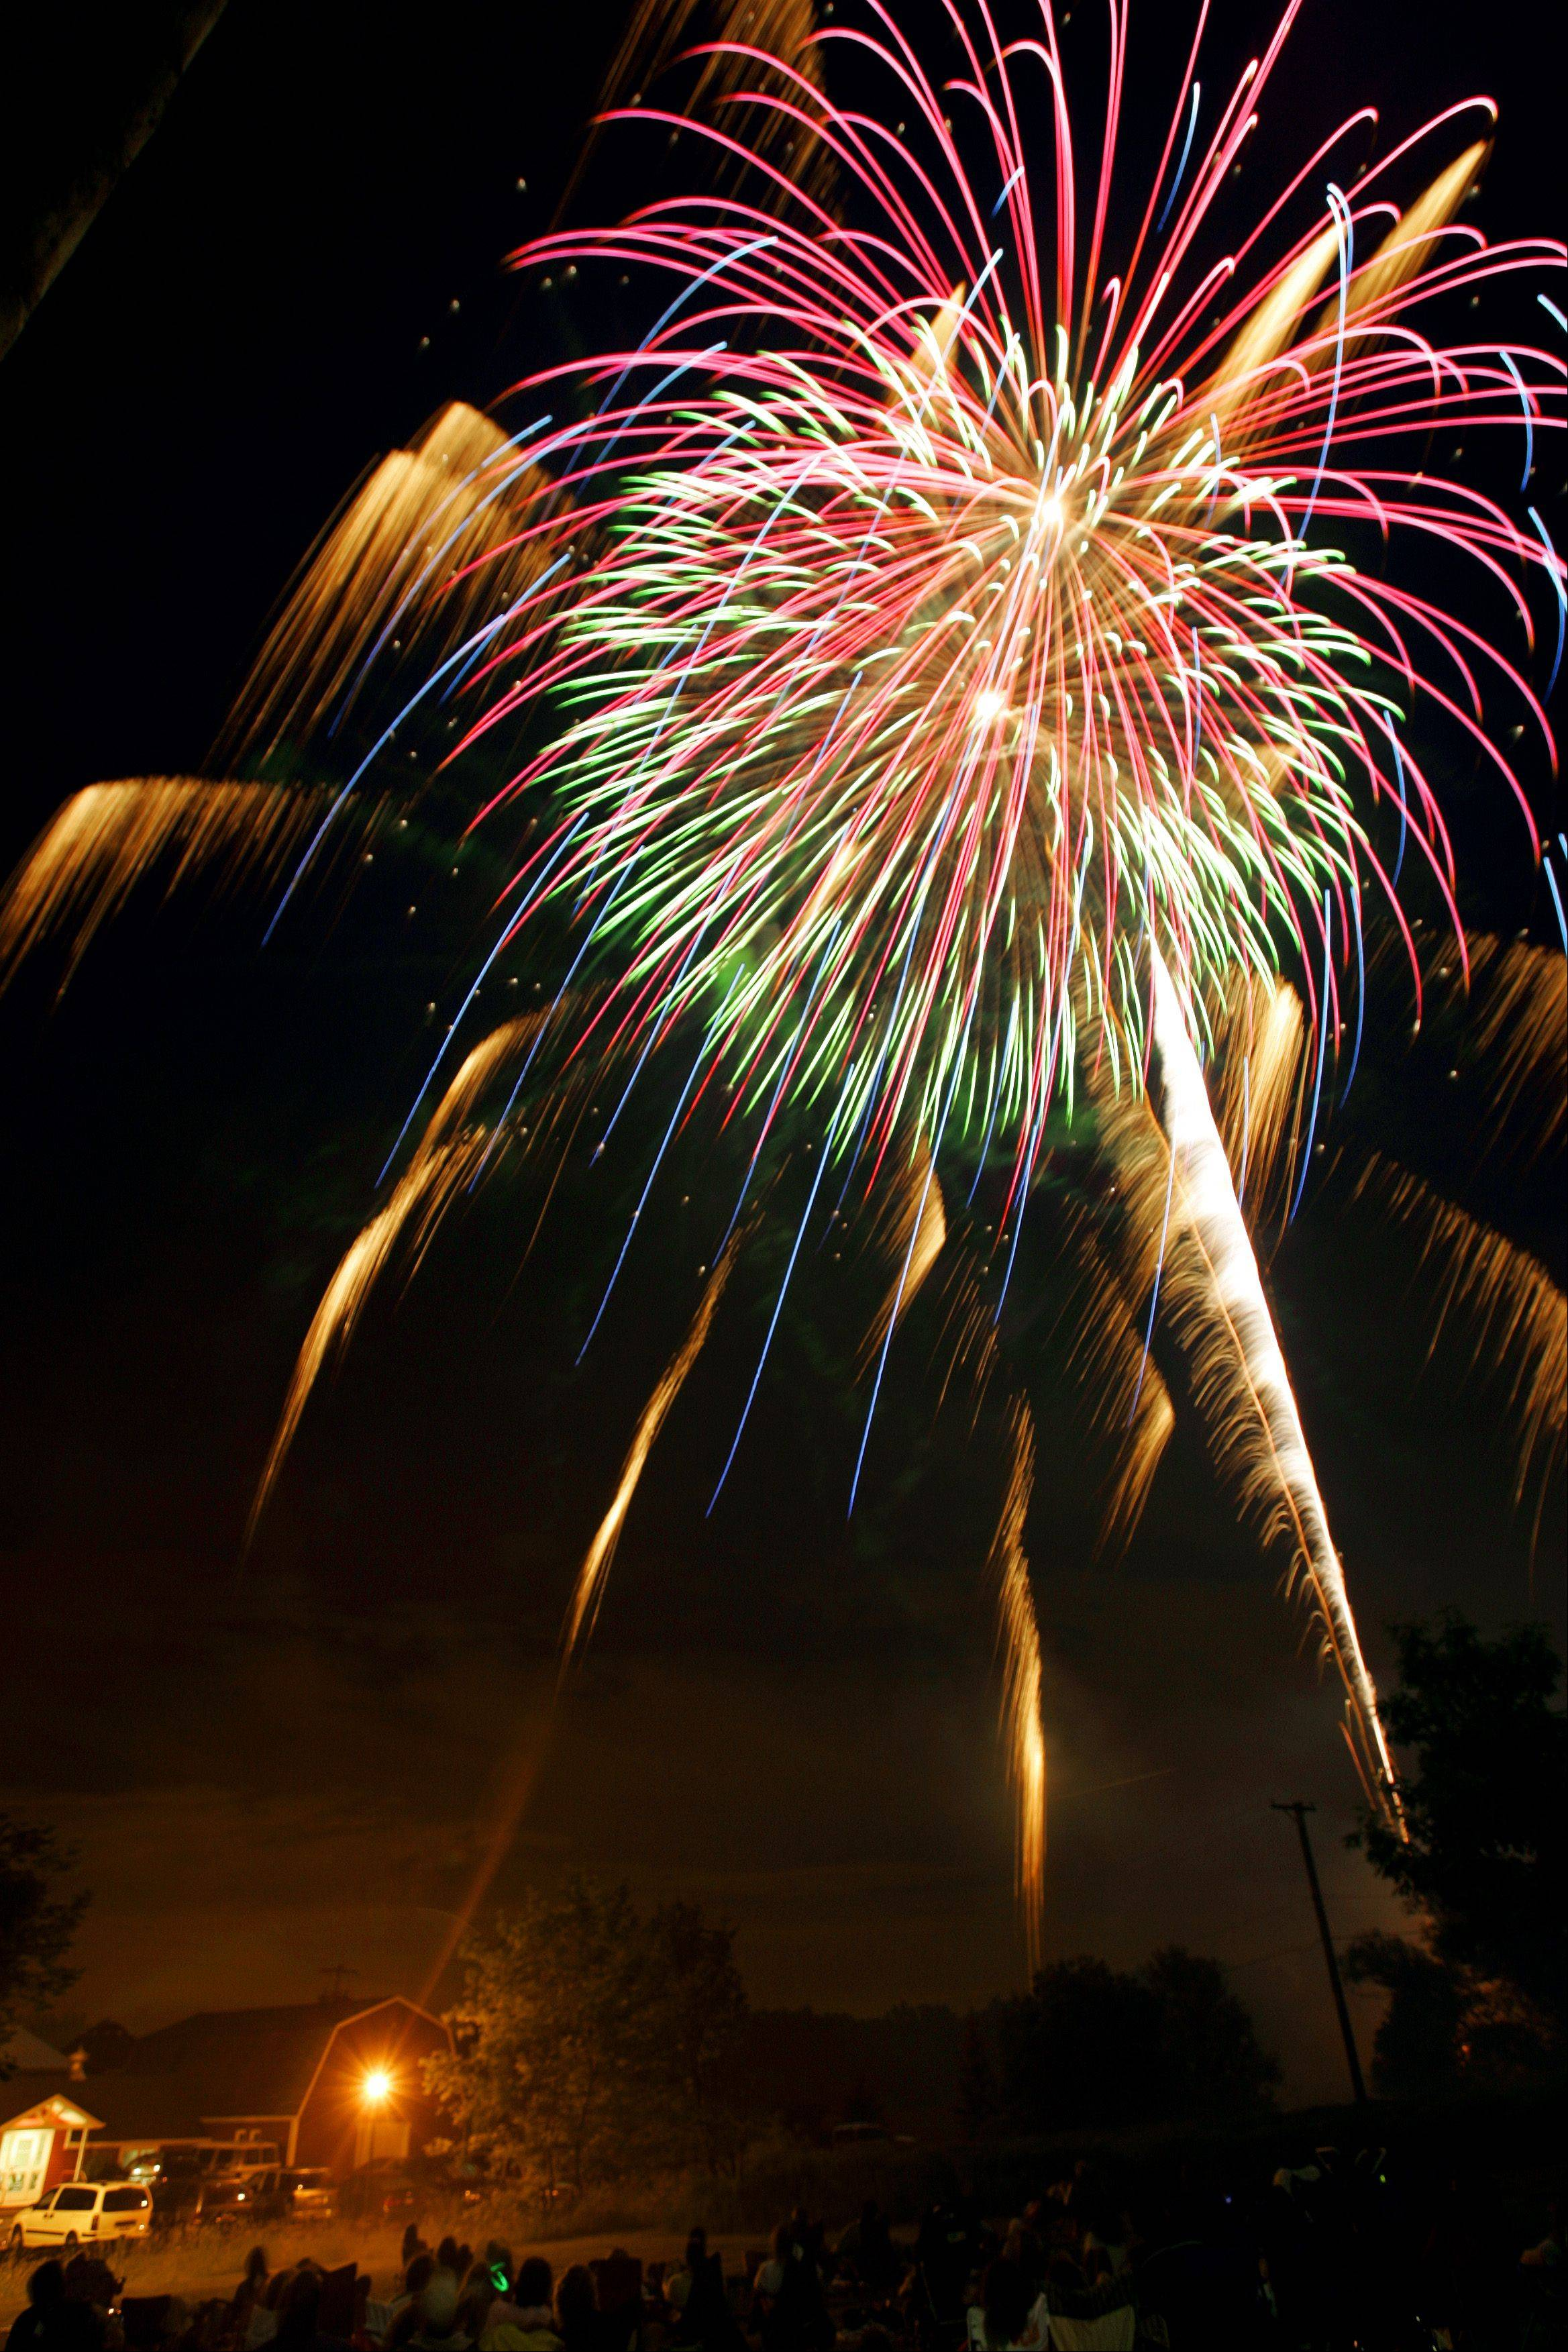 See Sleepy Hollow's Fourth of July fireworks at dusk Thursday, July 4, at Sabatino Park.